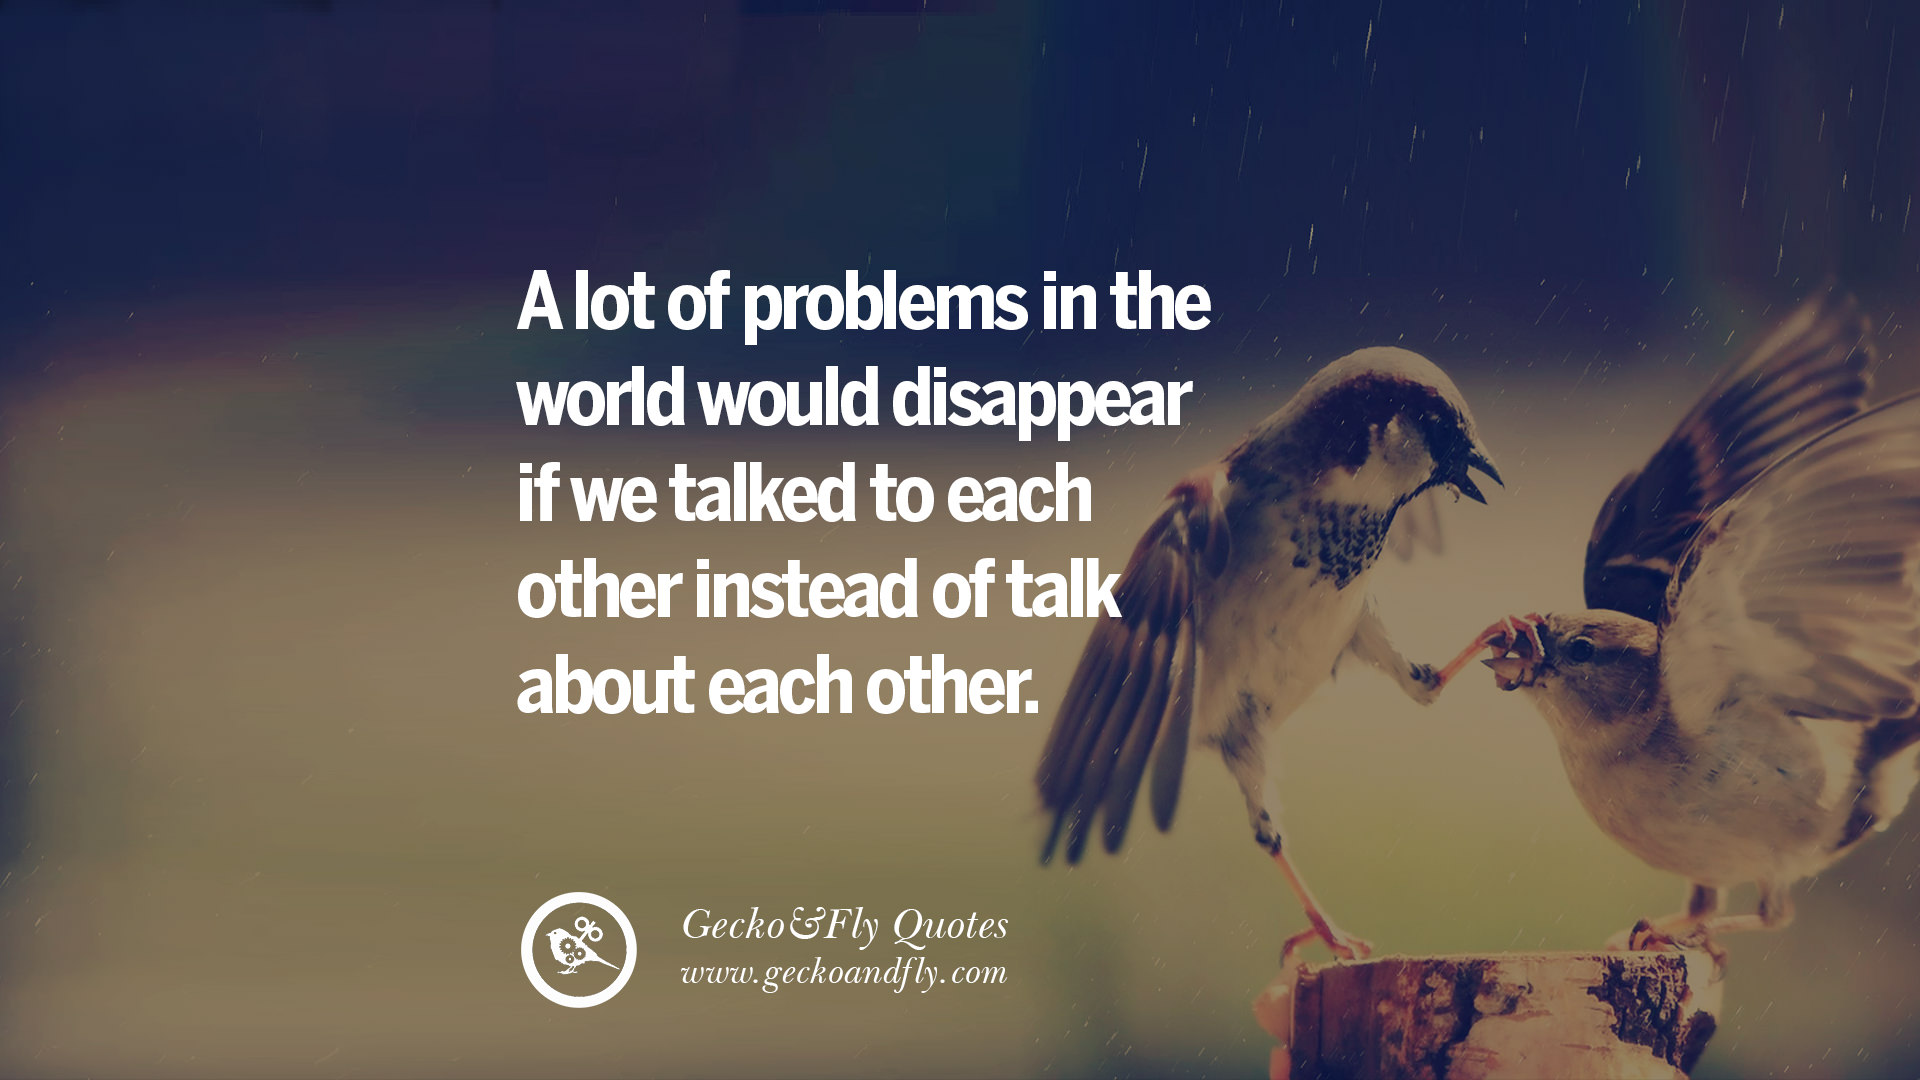 Quotes For Long Distance Love 15 Love Quotes On Long Distance Relationship And Romance On